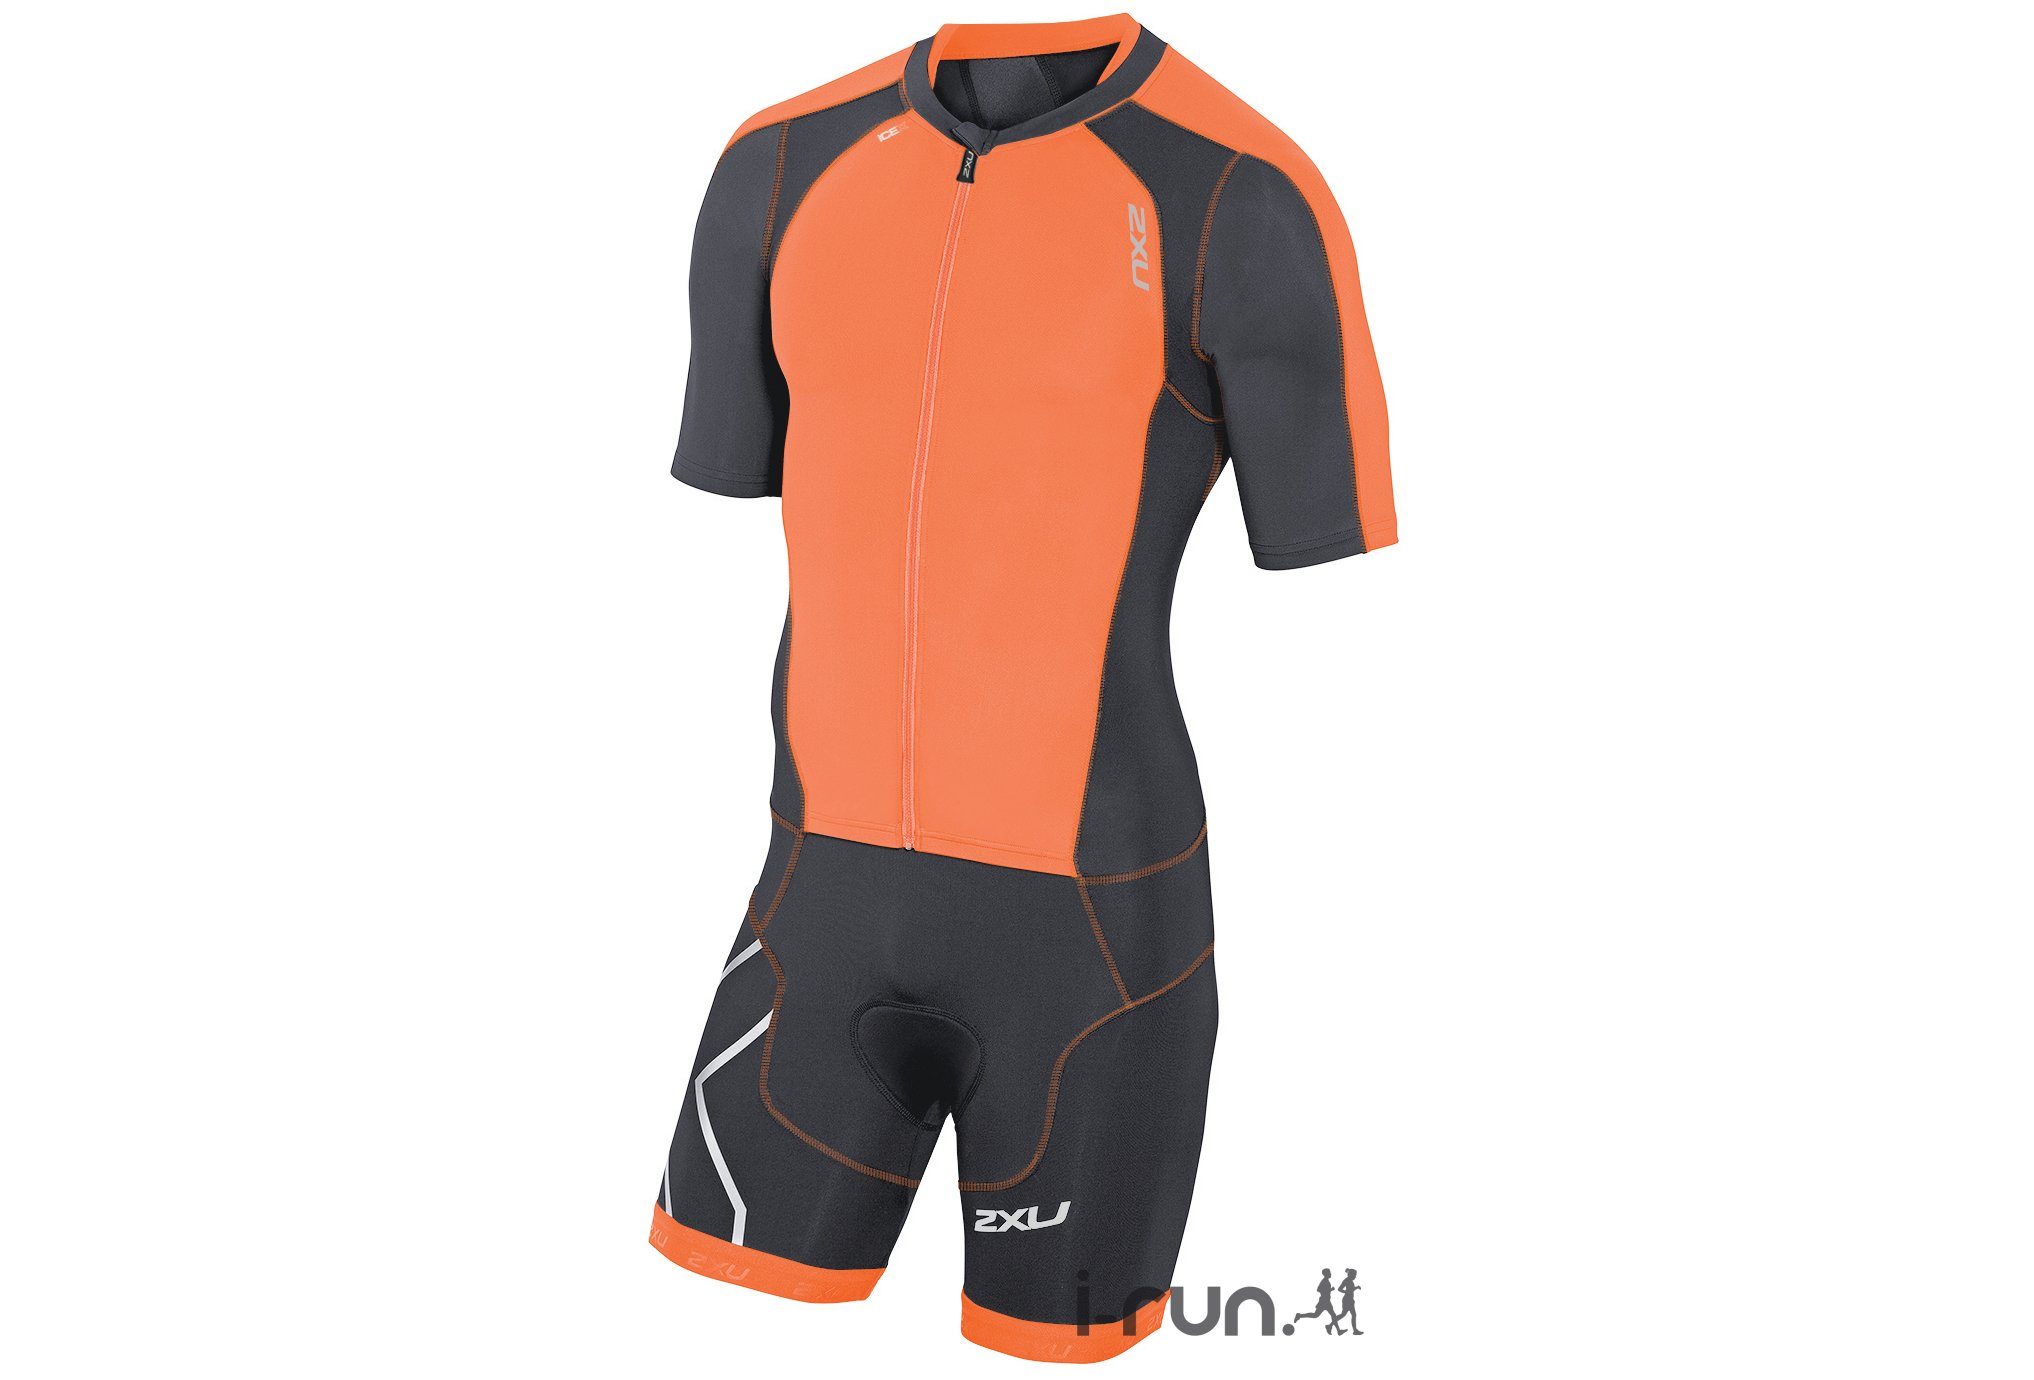 2xu Perform compression trisuit m vêtement running homme